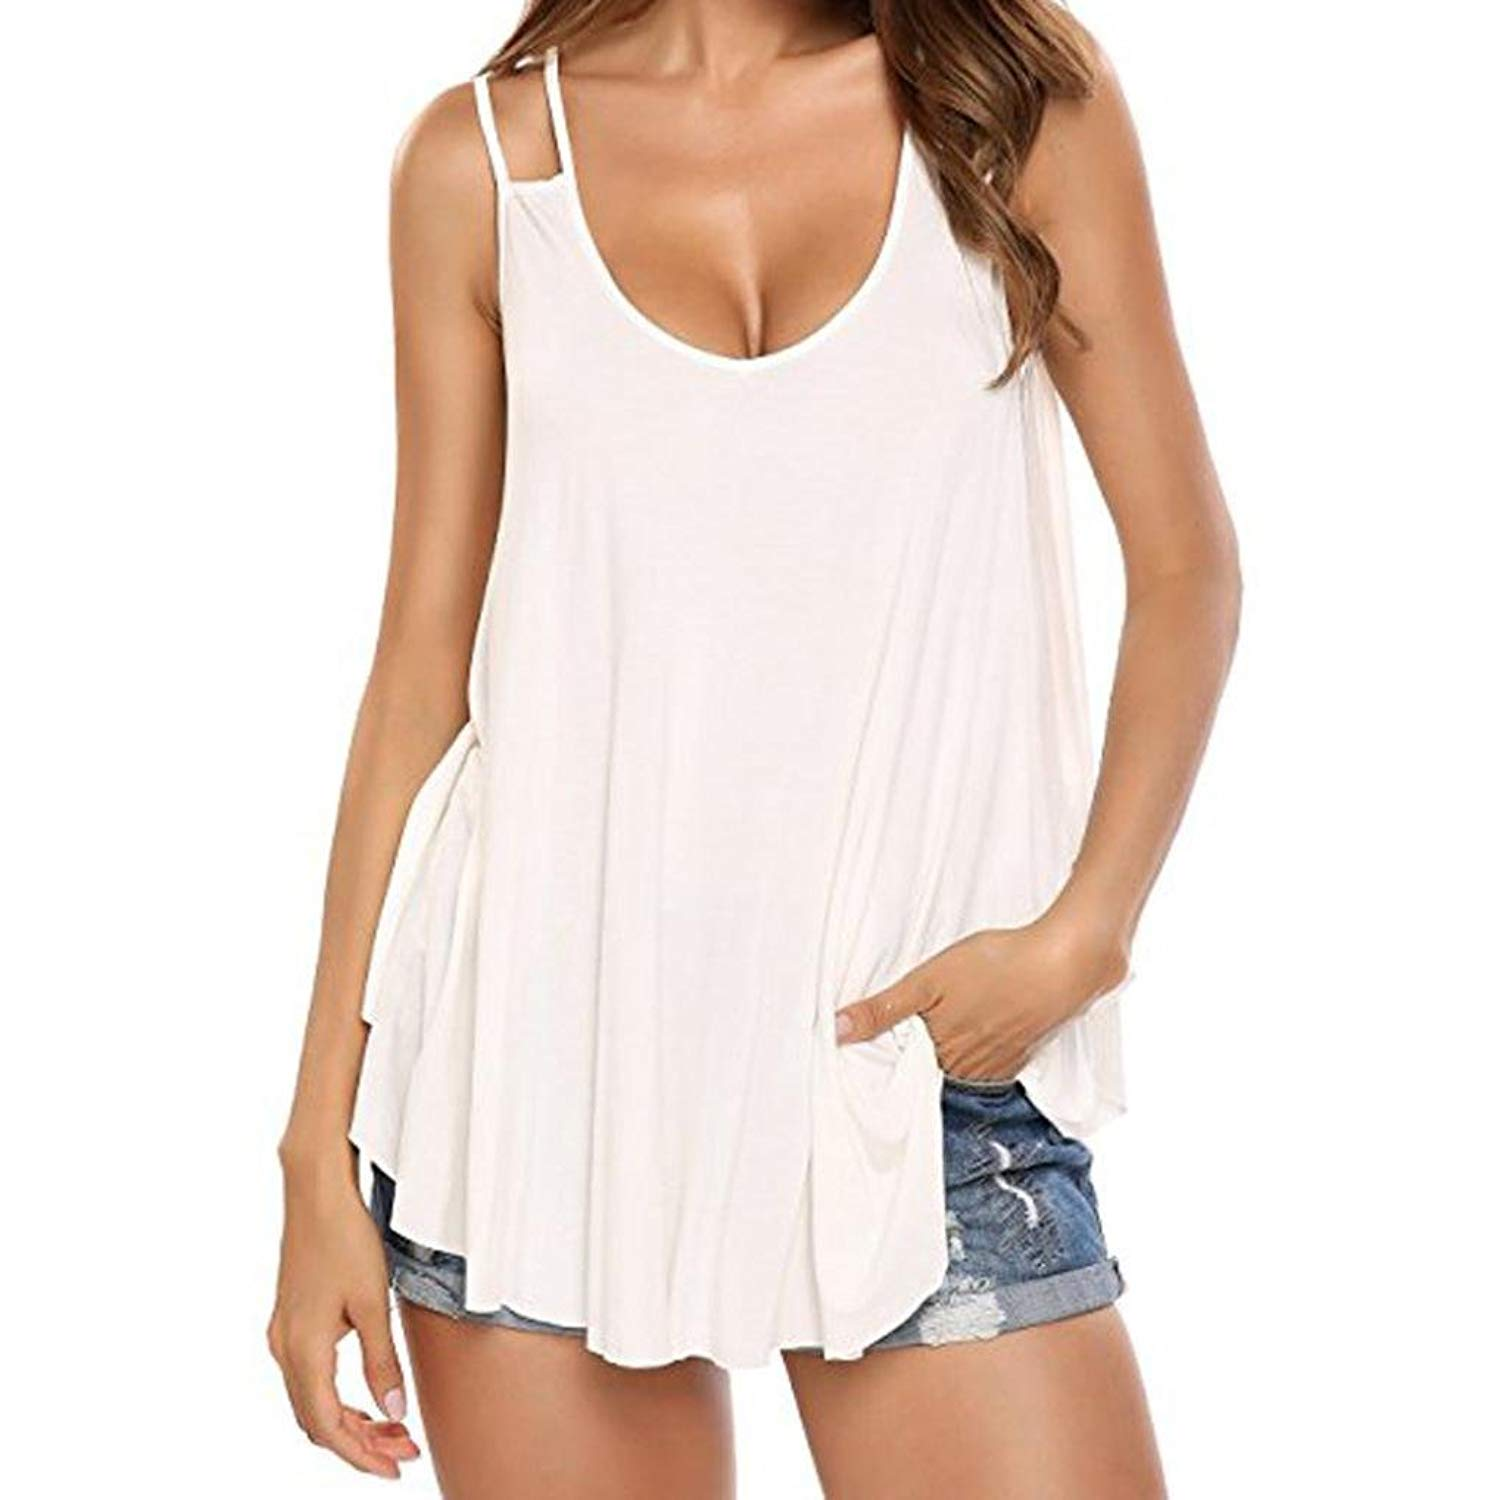 Sexy Camisole, Women Casual Loose Ruffles Sling Tops Sleeveless Pure Color Tank Blouse